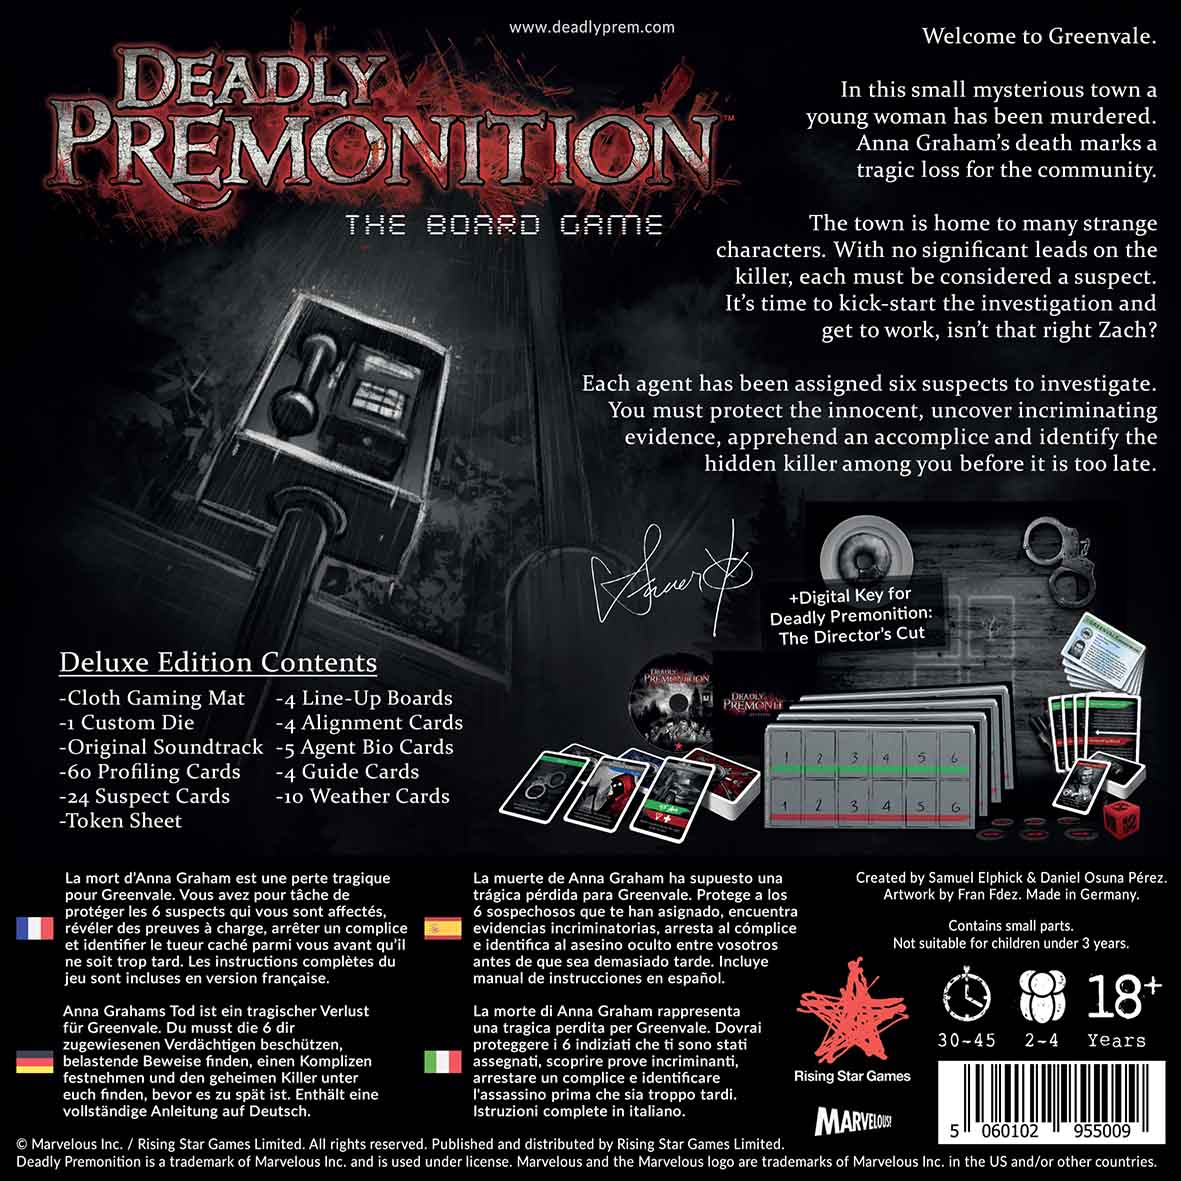 Deadly Premonition The Board Game: Deluxe Edition (PC)